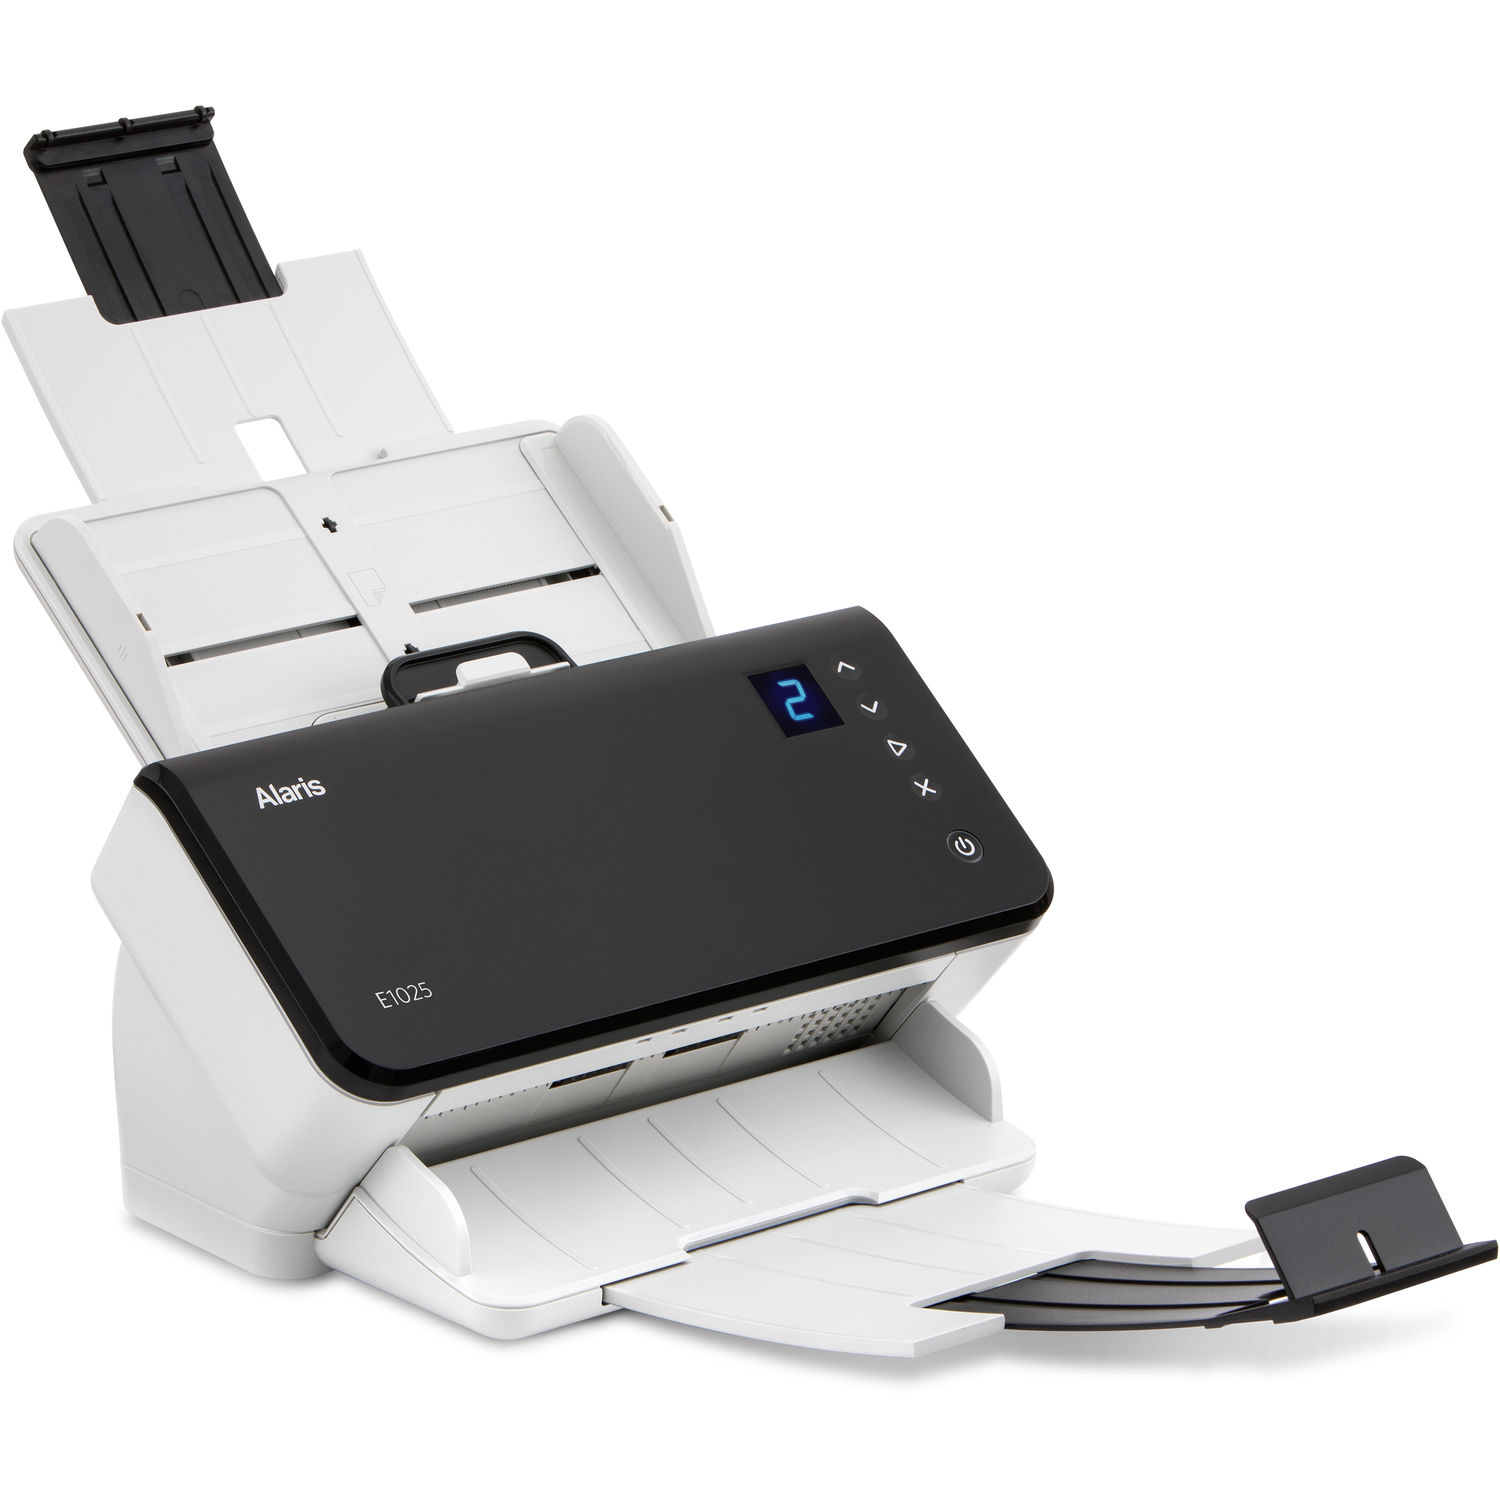 High speed document scanners in Pune, Duplex document scanners in India, ADF Document Scanners in Mumbai, Ahemedabad, Gandhinagar, Jaipur, Kolkata